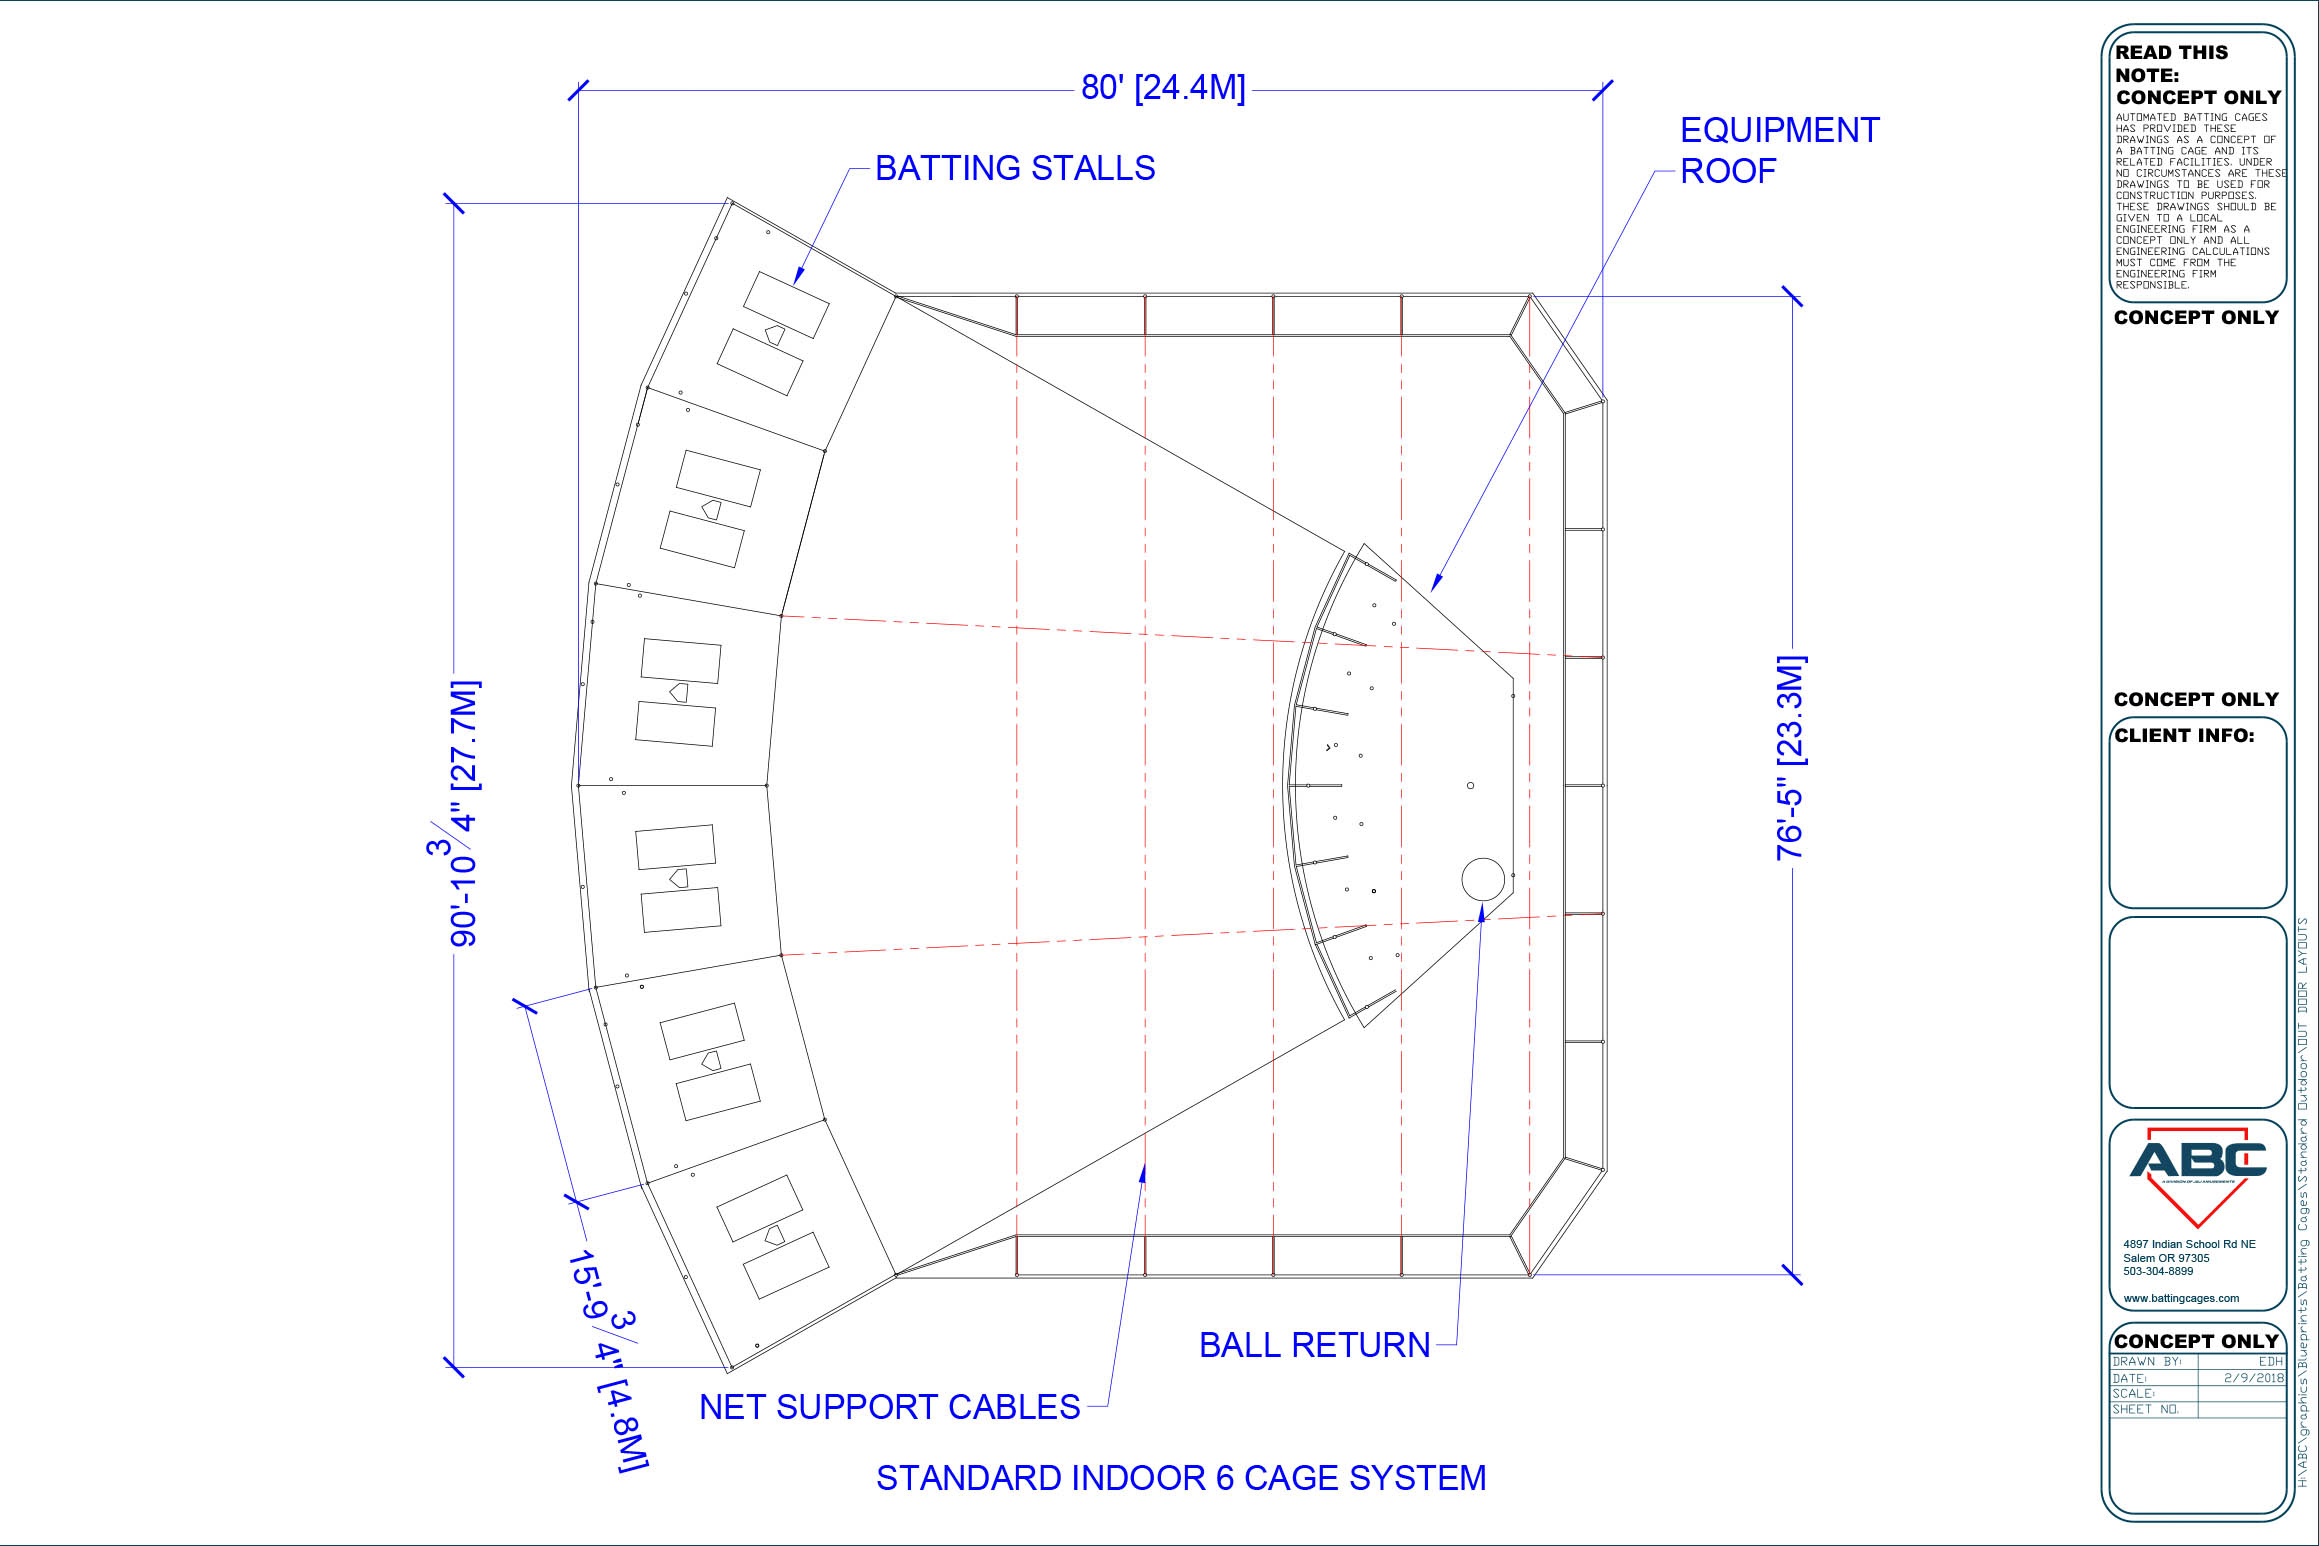 ABC standard indoor 6 cage system blueprint